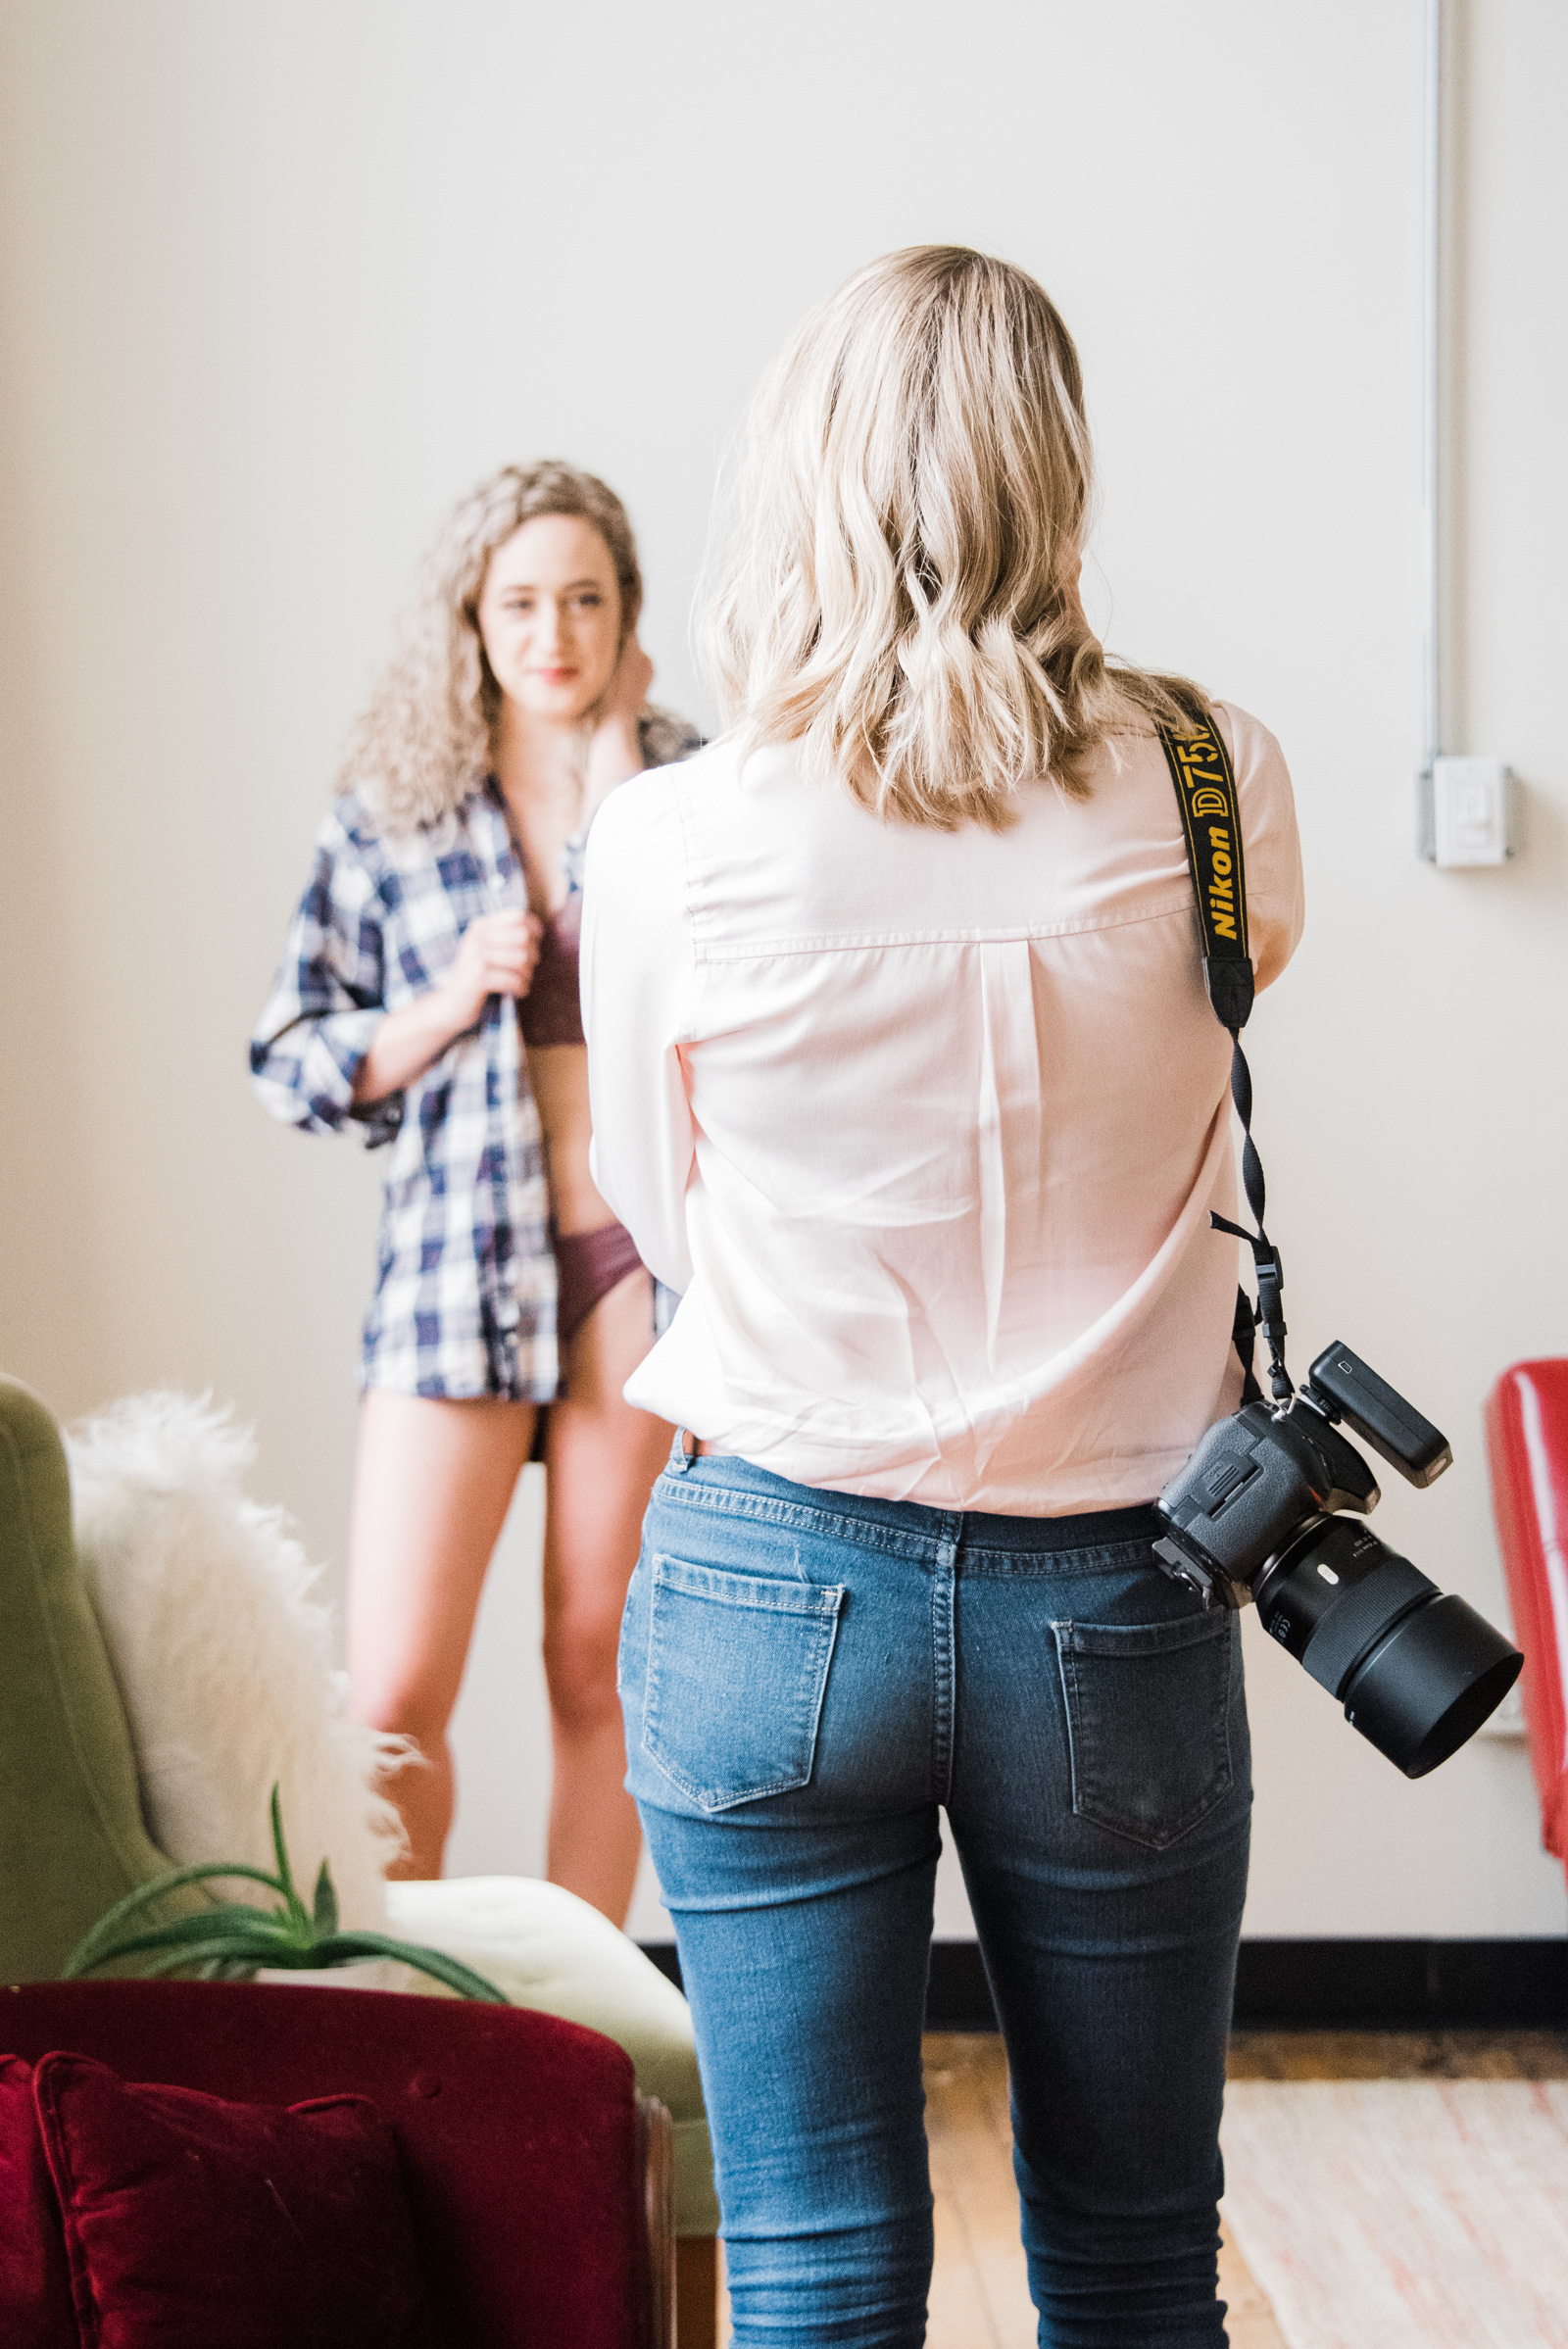 a boudoir photographer poses her client, photographed as part of a behind the scenes brand shoot by jamie bannon photography.